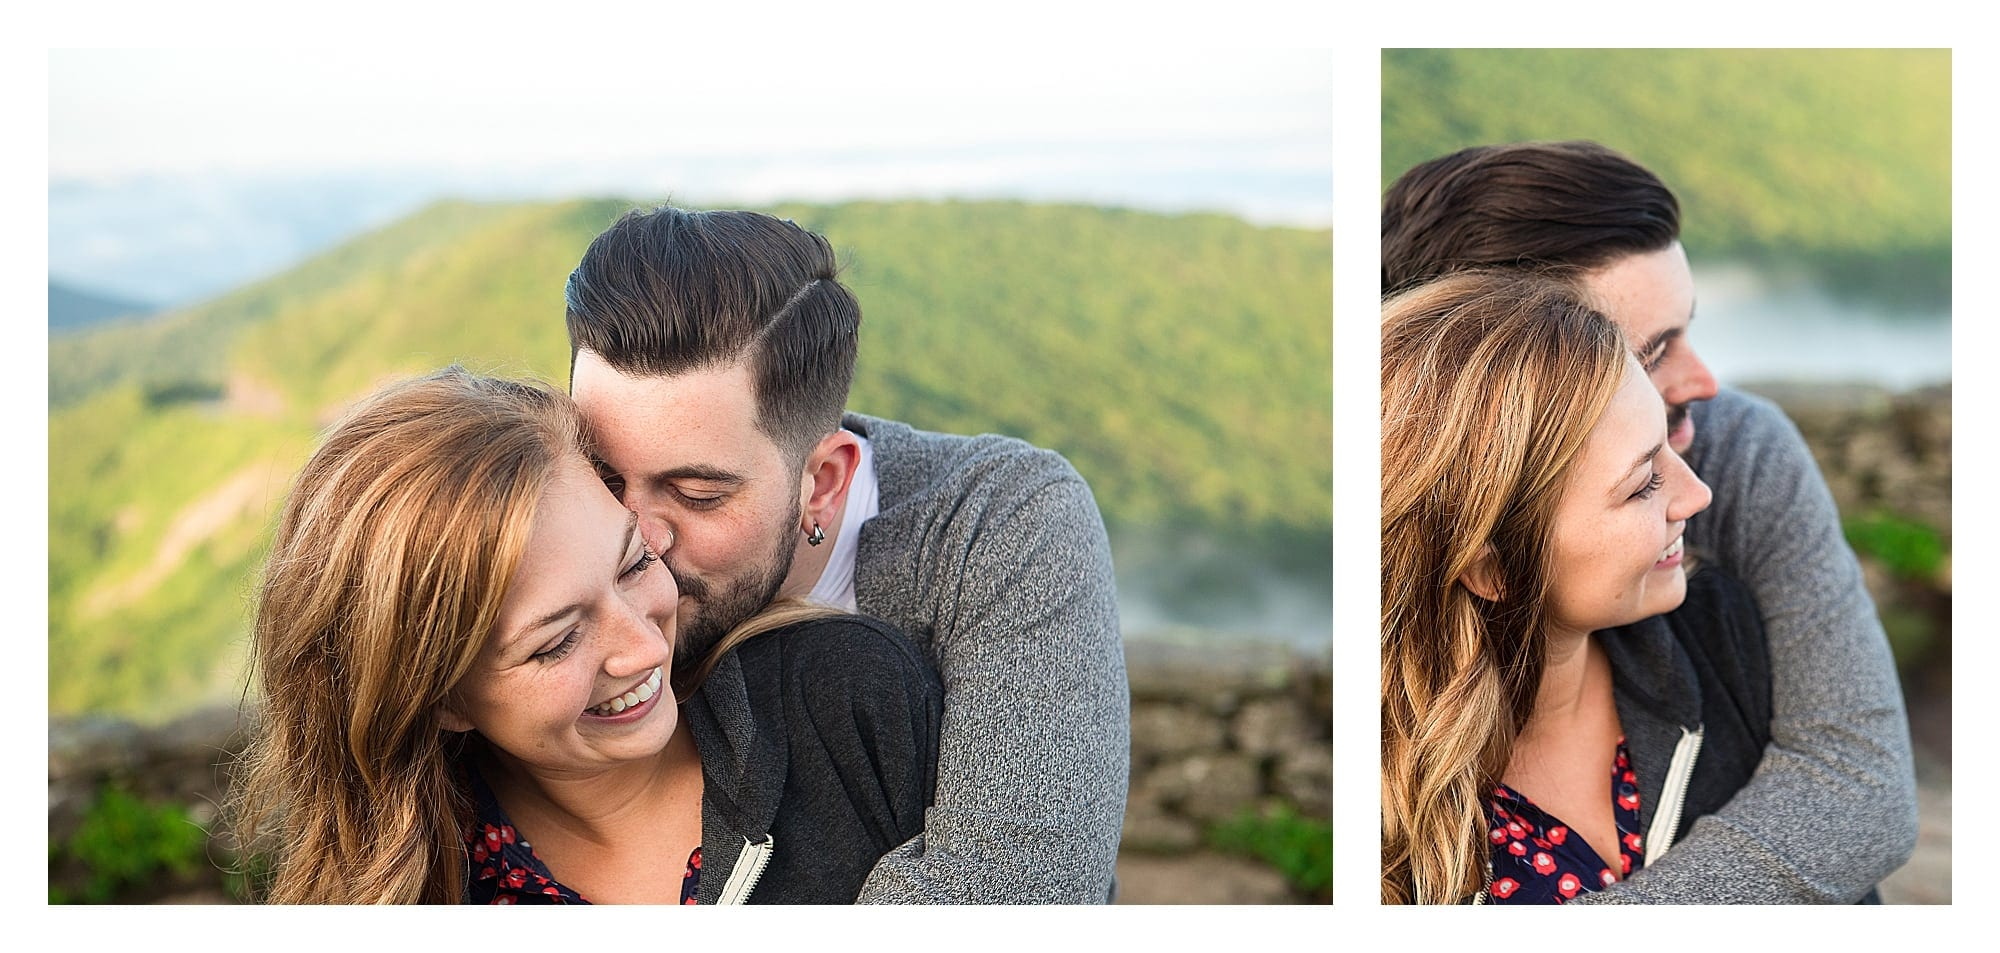 Man hugging fiance and kissing her on cheek